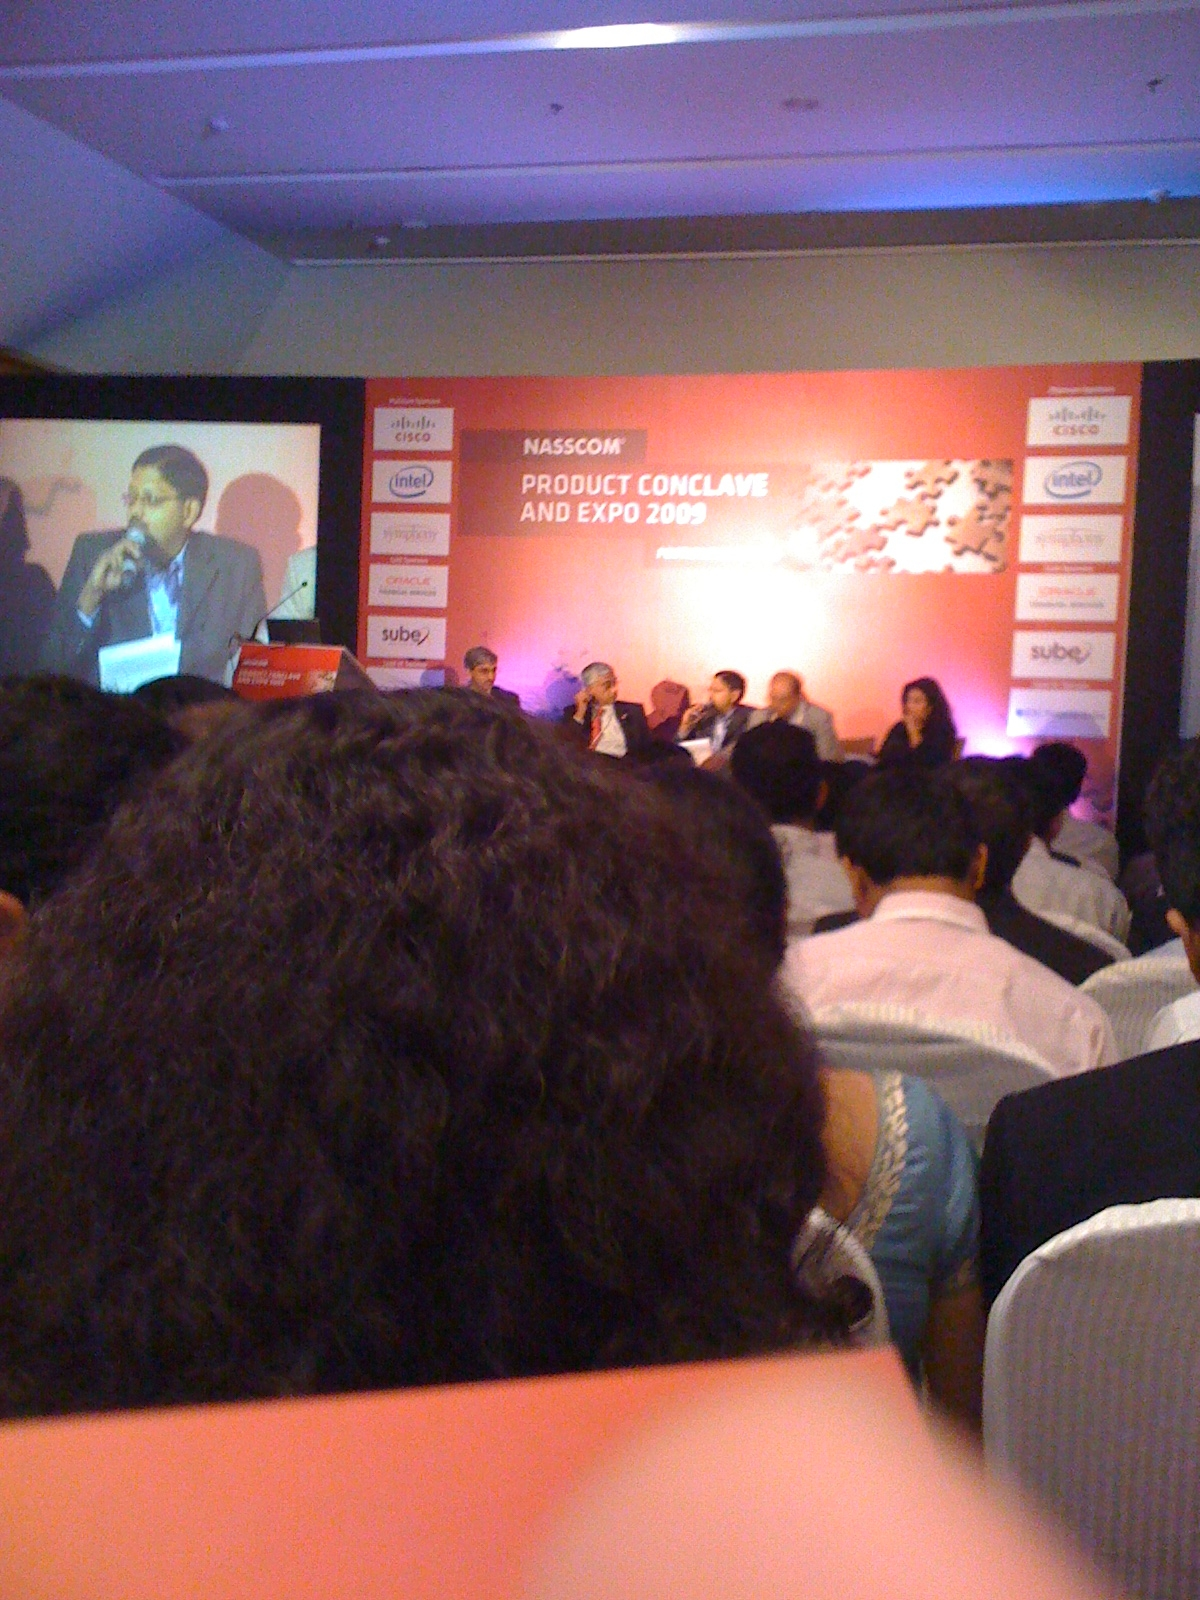 Nasscom Product Conclave 2009